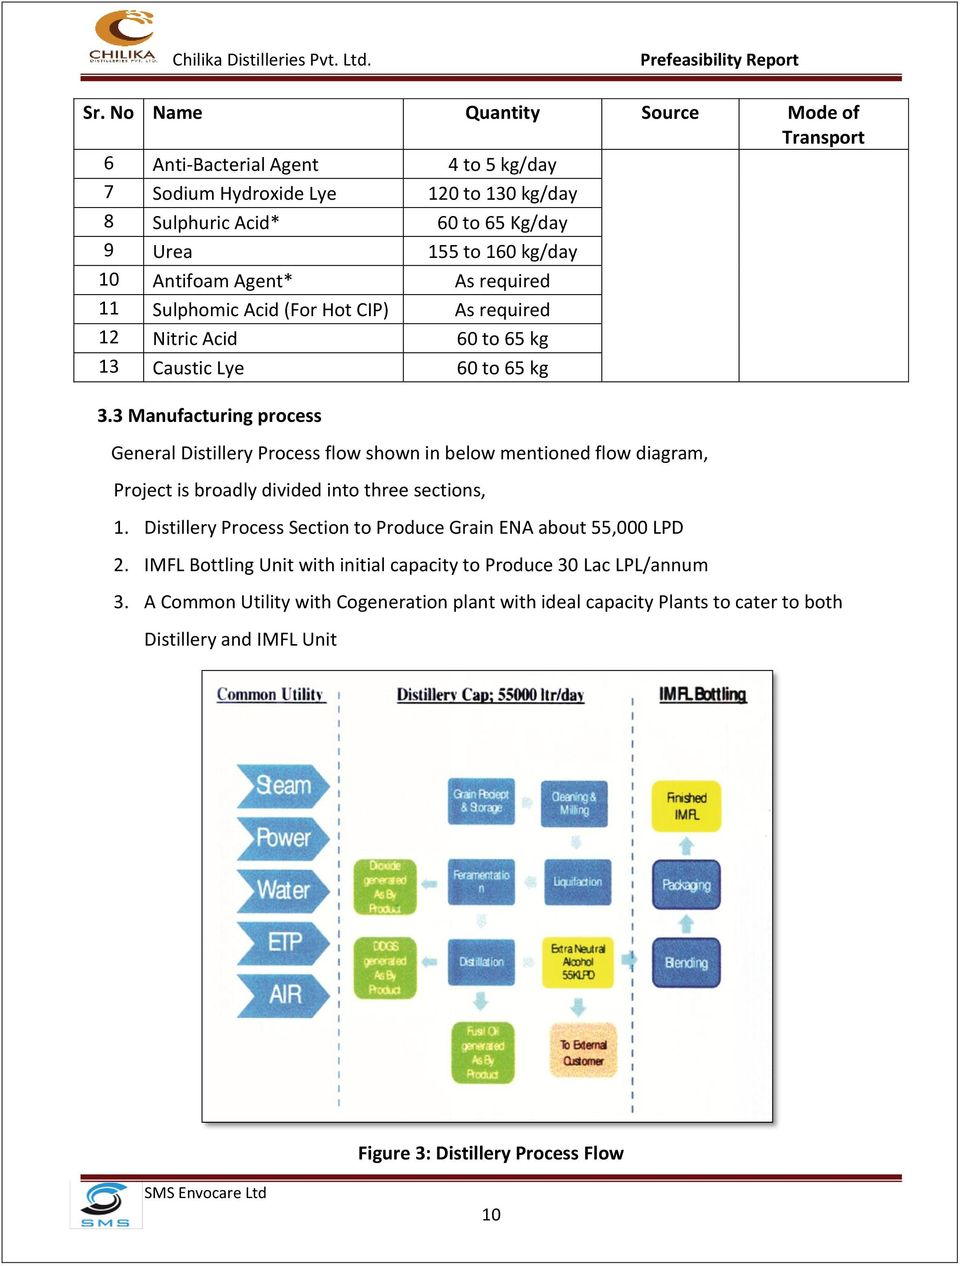 Chilika Distilleries Pvt Ltd Pdf Captive Power Plant Flow Diagram 3 Manufacturing Process General Distillery Shown In Below Mentioned Project Is